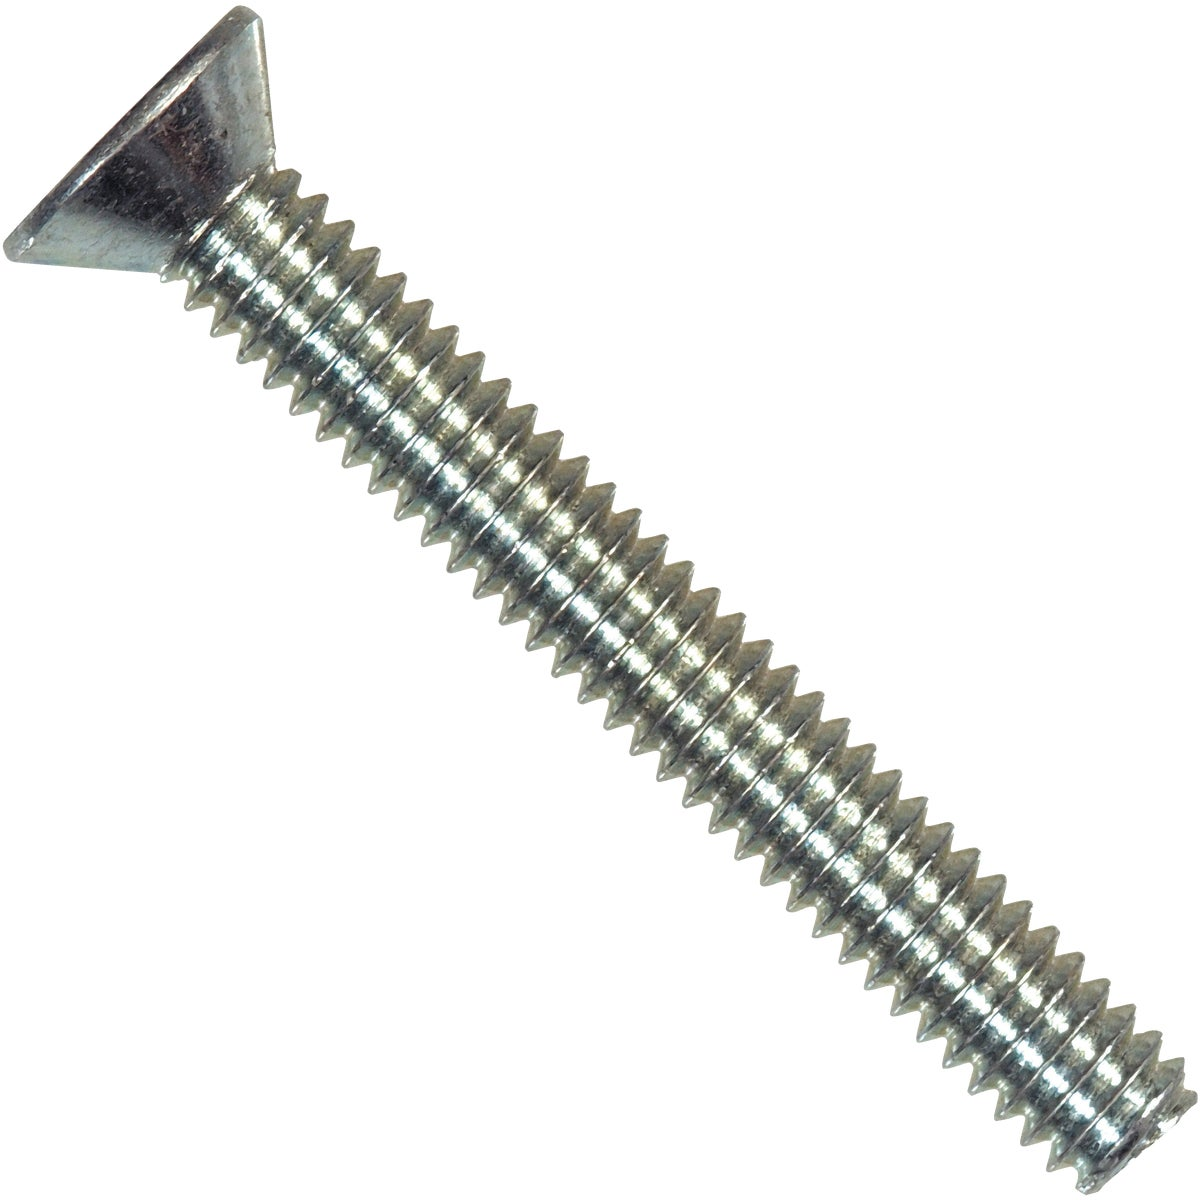 10-24X1-1/2 P MACH SCREW - 101081 by Hillman Fastener